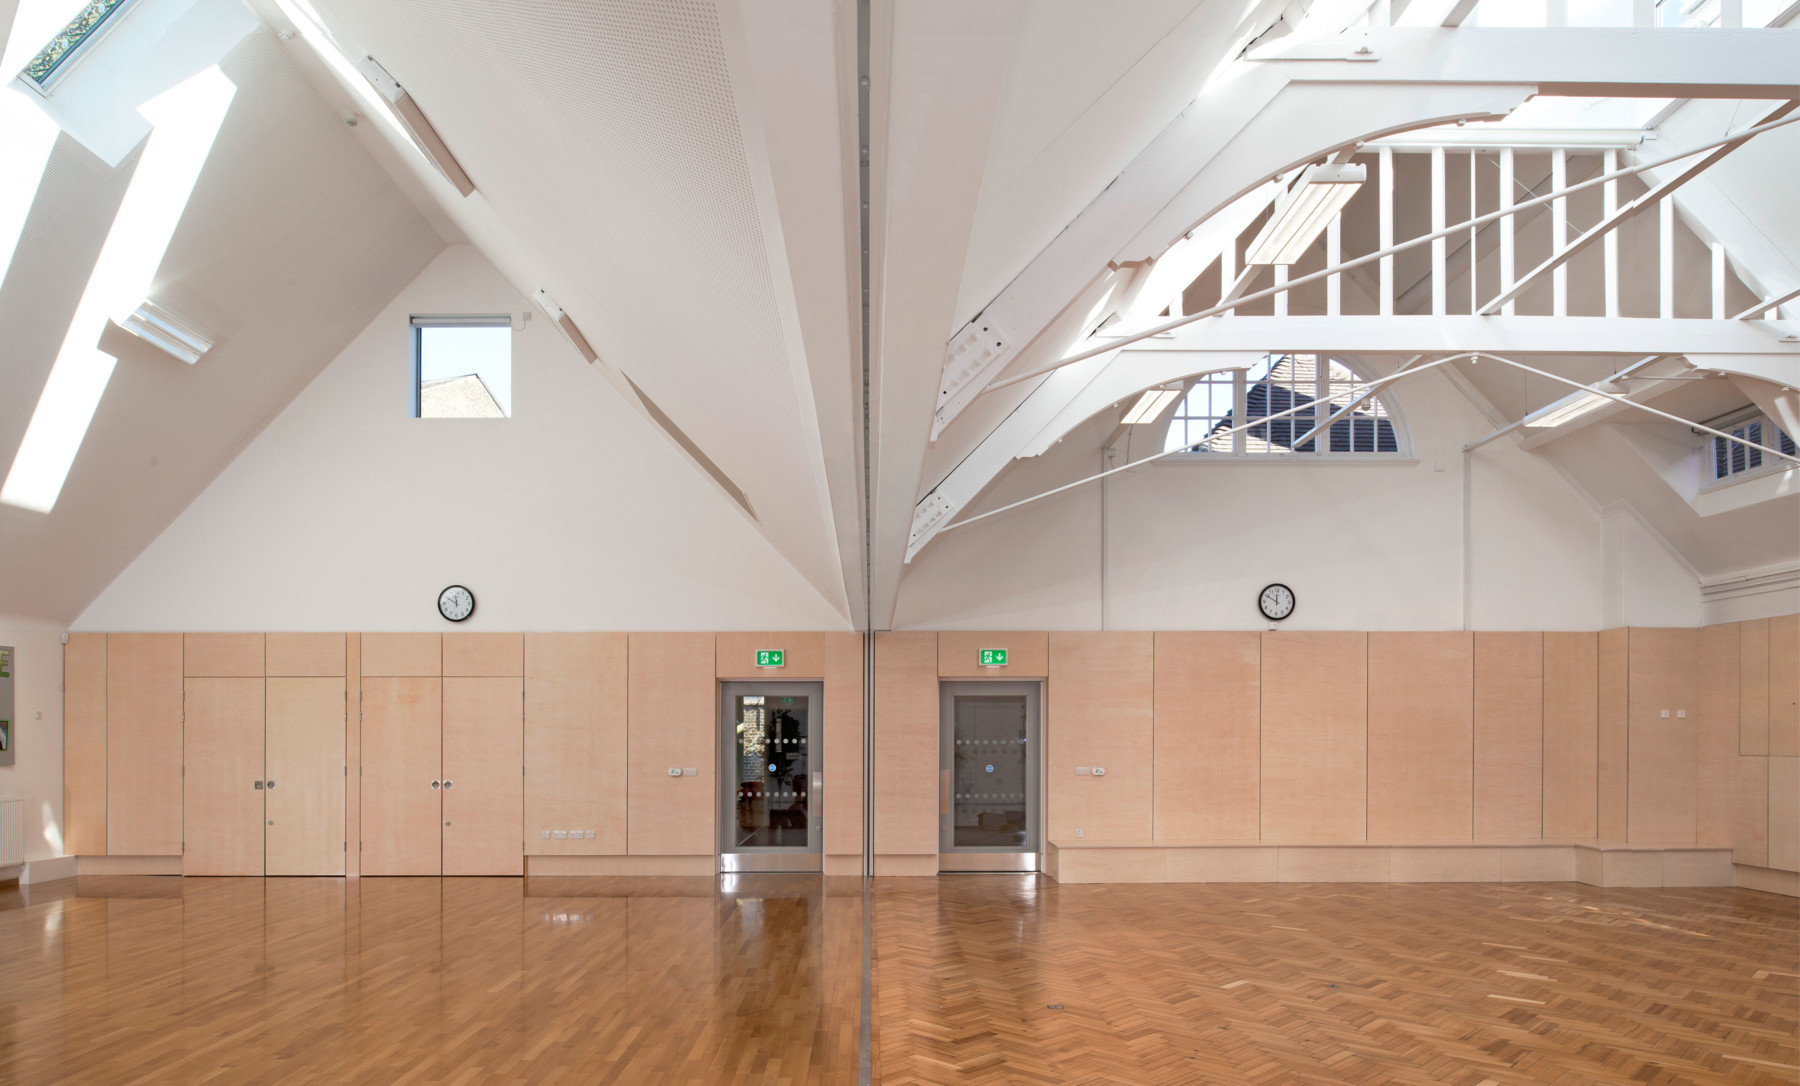 Sarah-Wigglesworth-Architects Kingsgate School Halls 3600